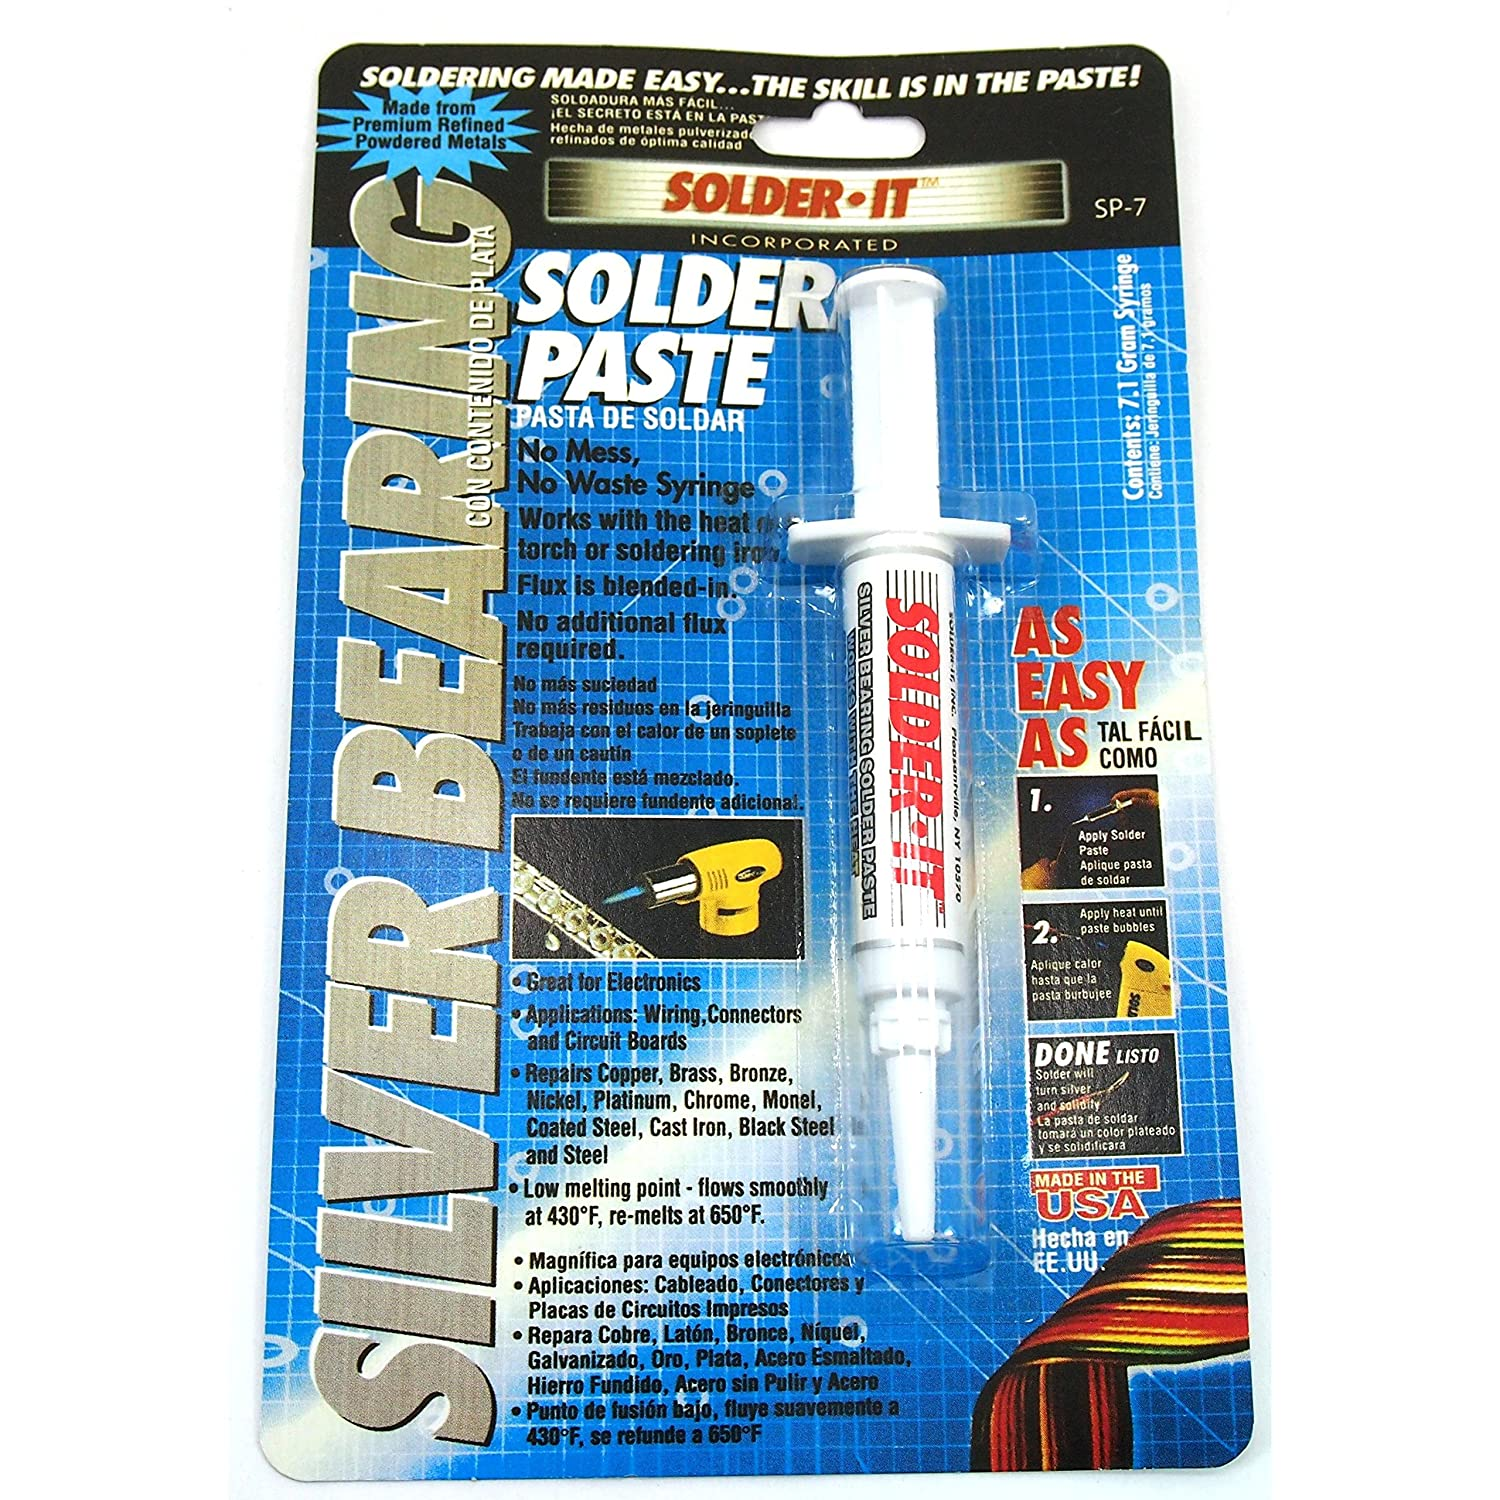 Silver & Copper Bearing Soldering Solder Paste Metals Jewelry Repair Kit 2 Pcs - Jewelry Making Supplies - Amazon.com